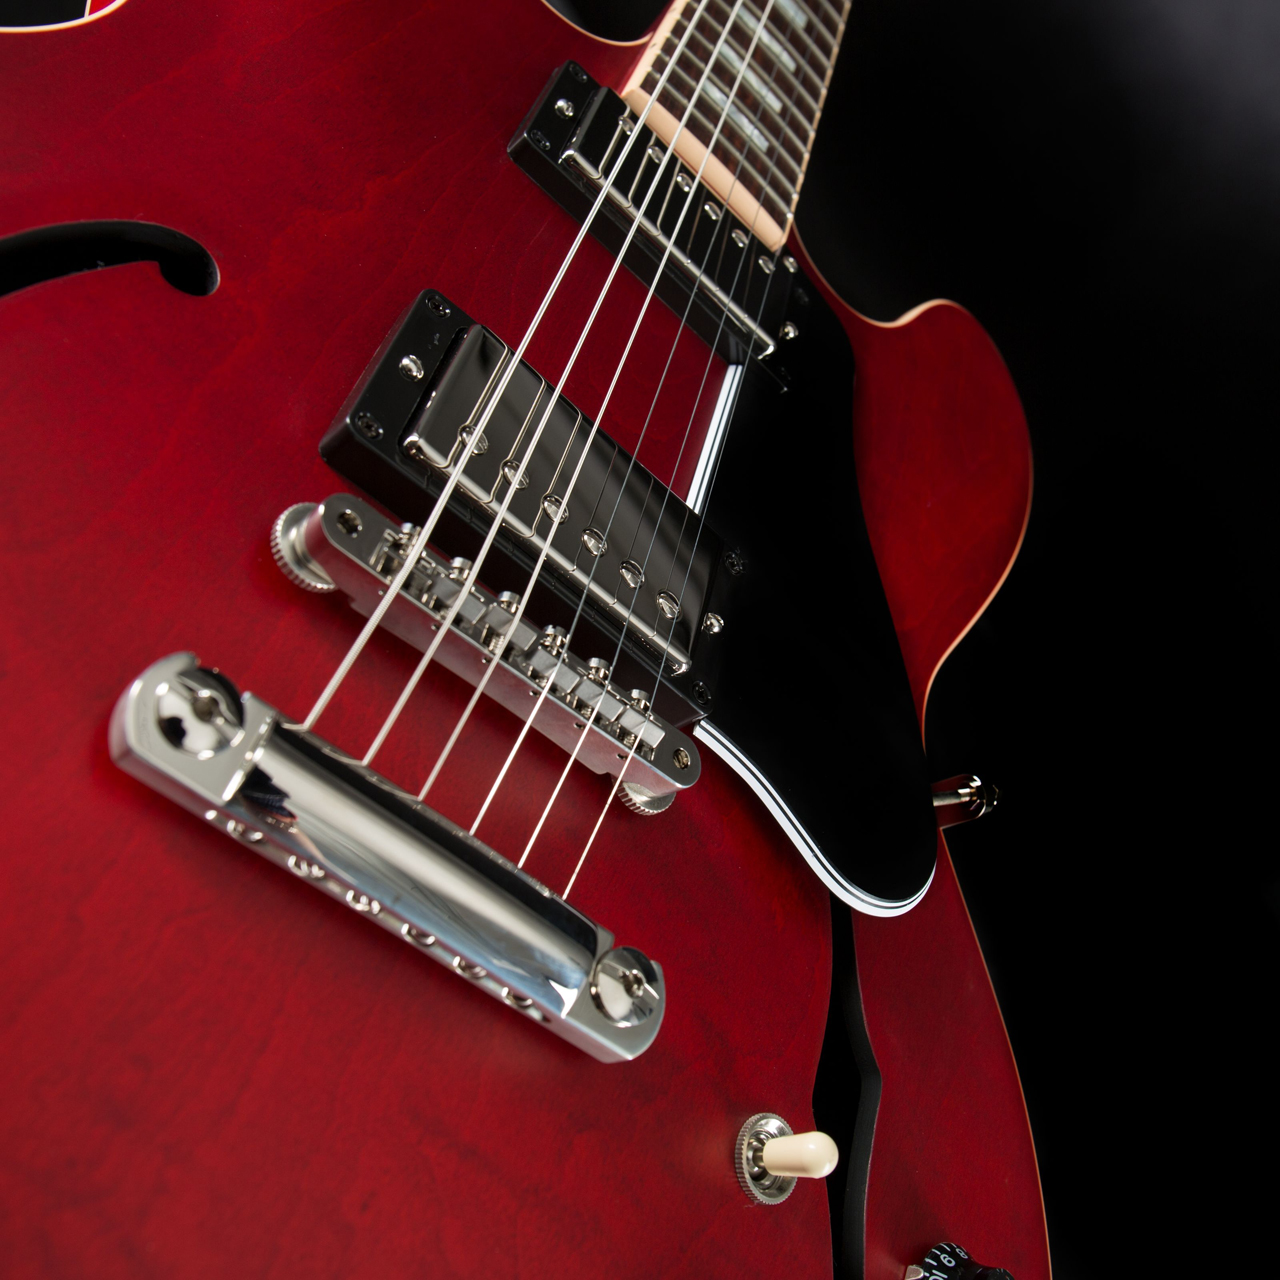 Gibson ES-335 Satin Faded Cherry Pickups